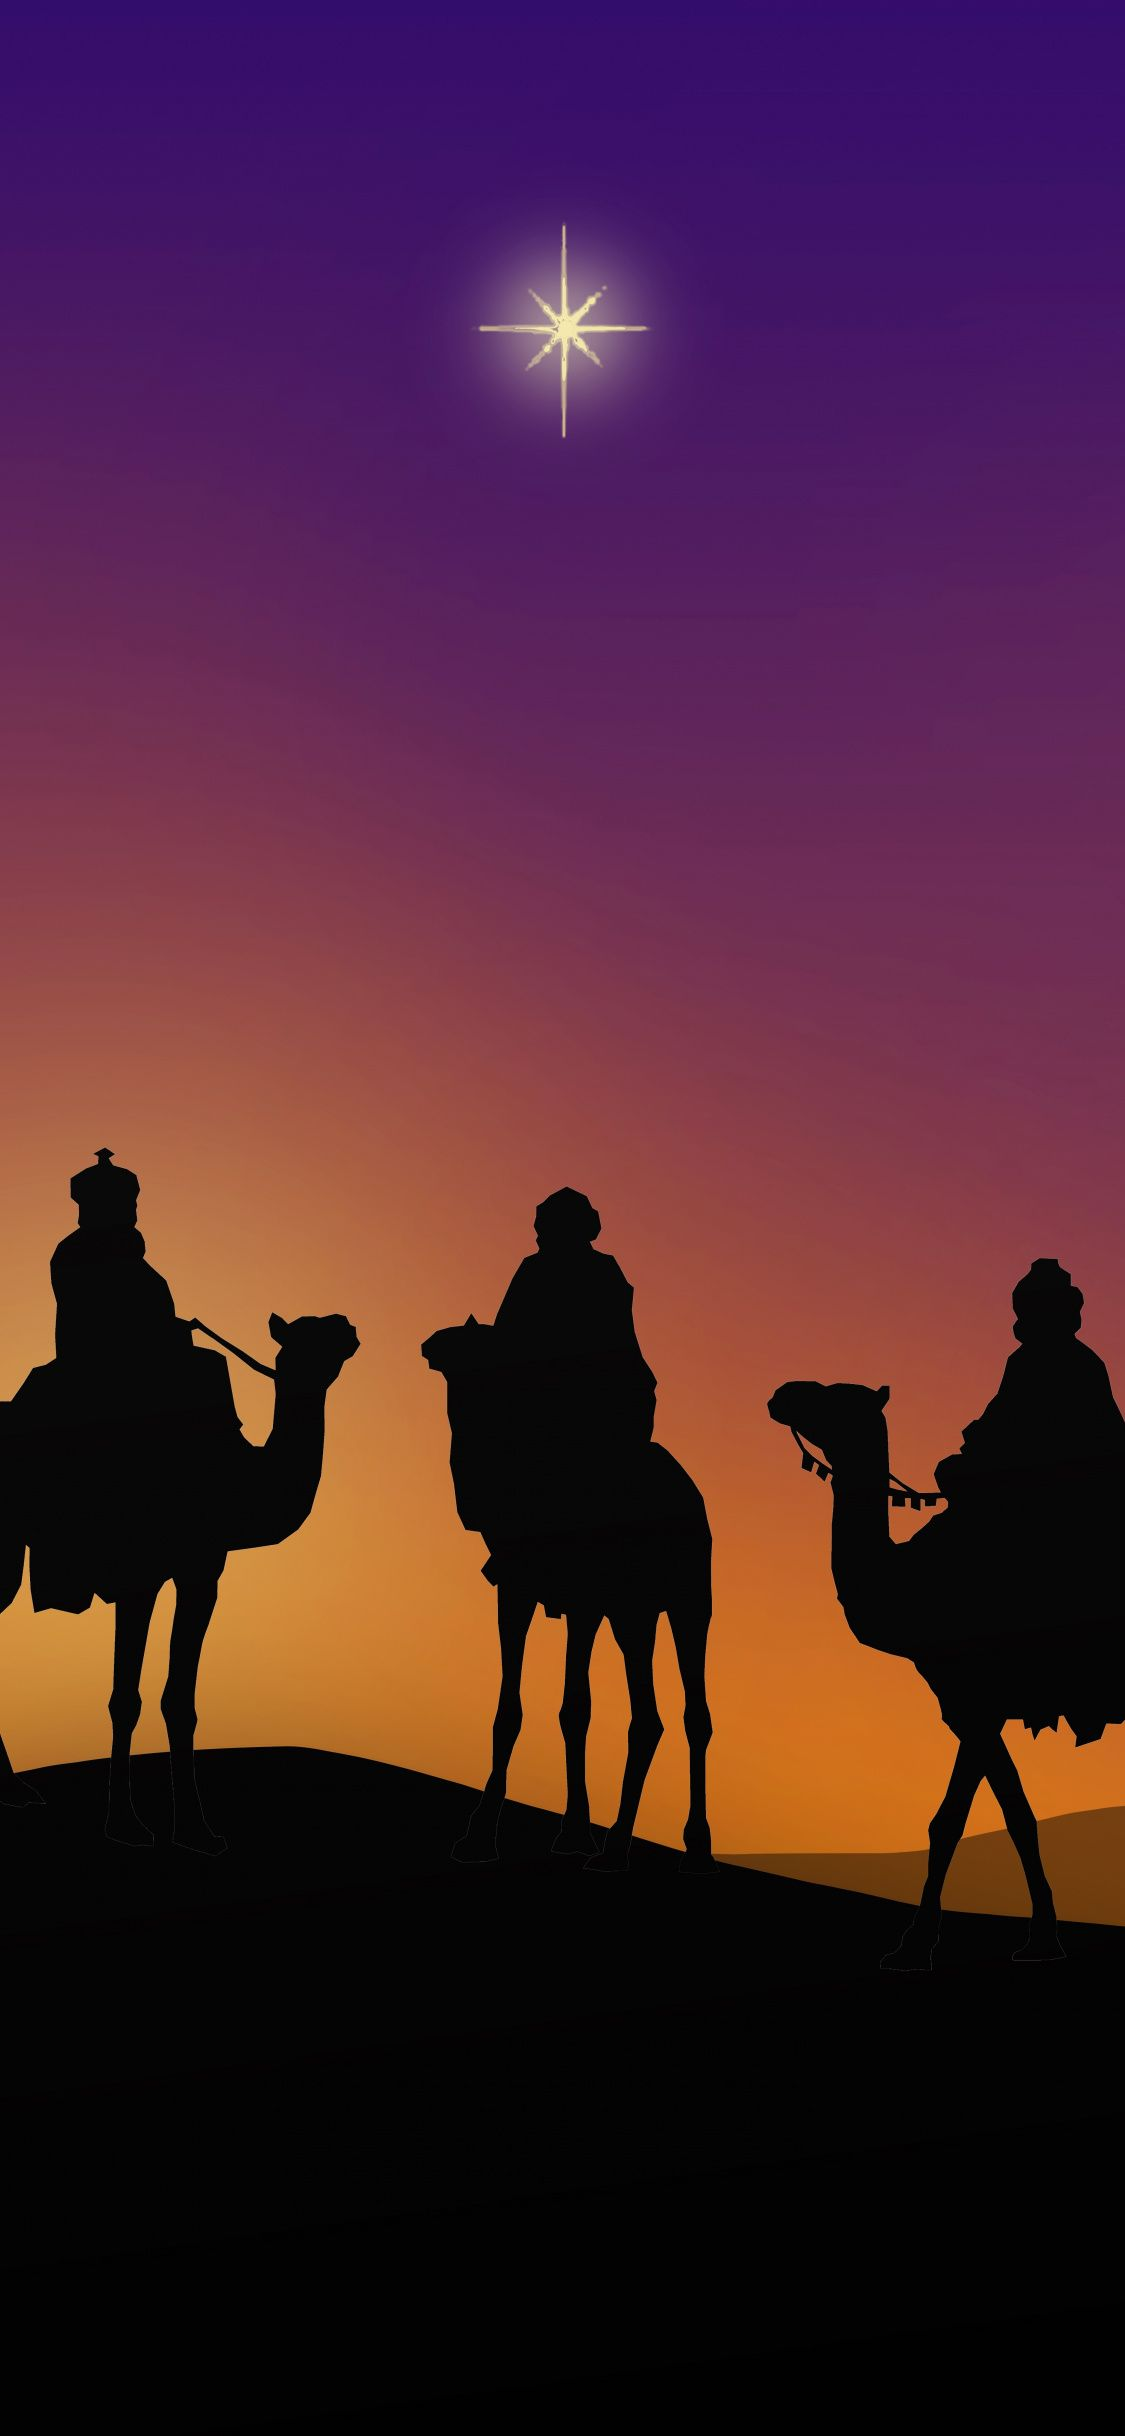 Download 1125x2436 wallpapers epiphany, camel, silhouette, minimal